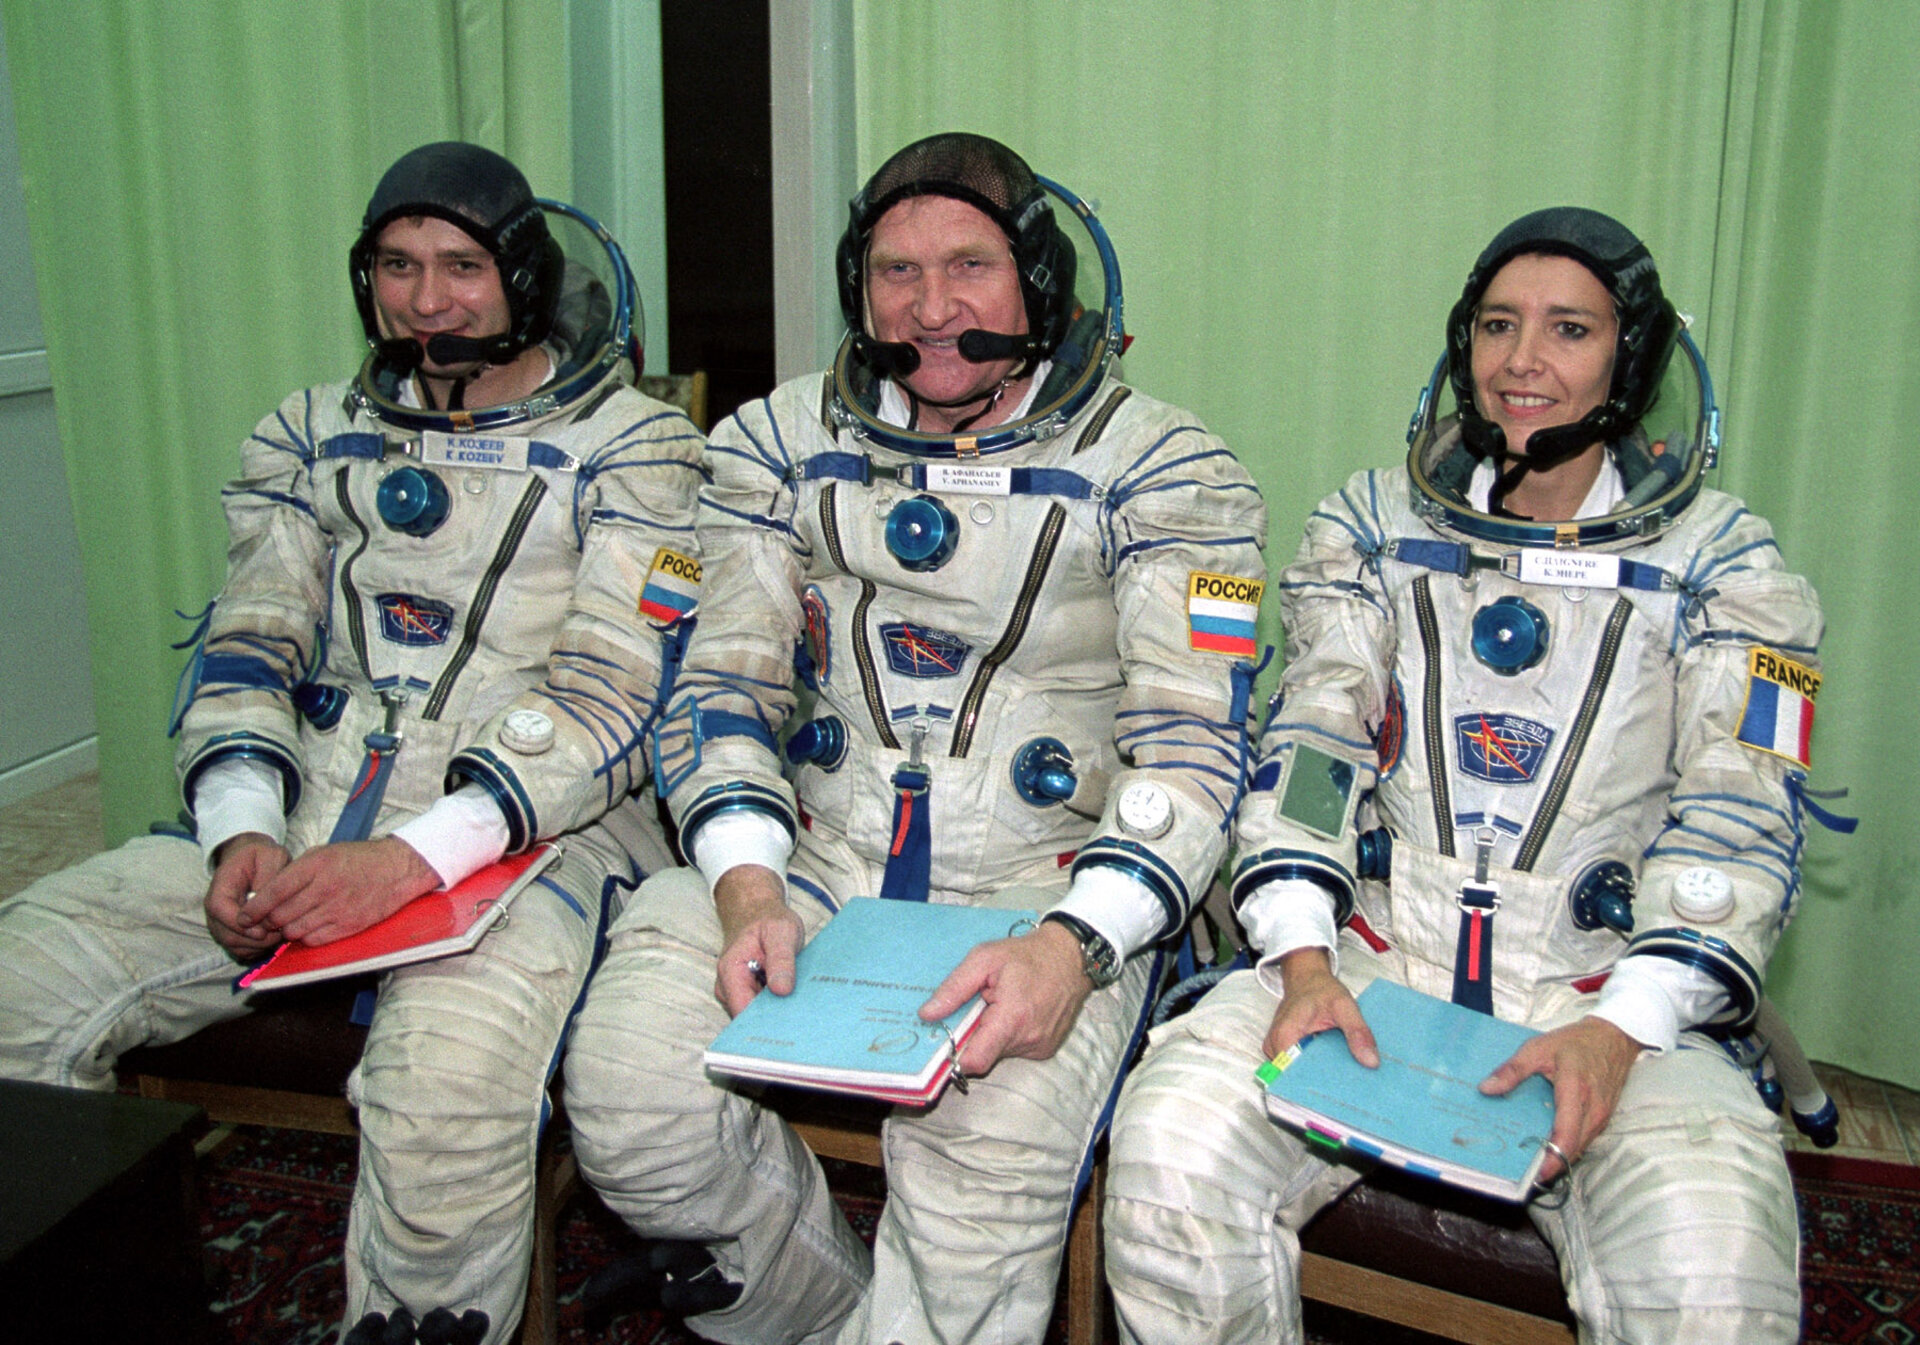 Qualification exams were successful for the Soyuz Taxi 2 crew